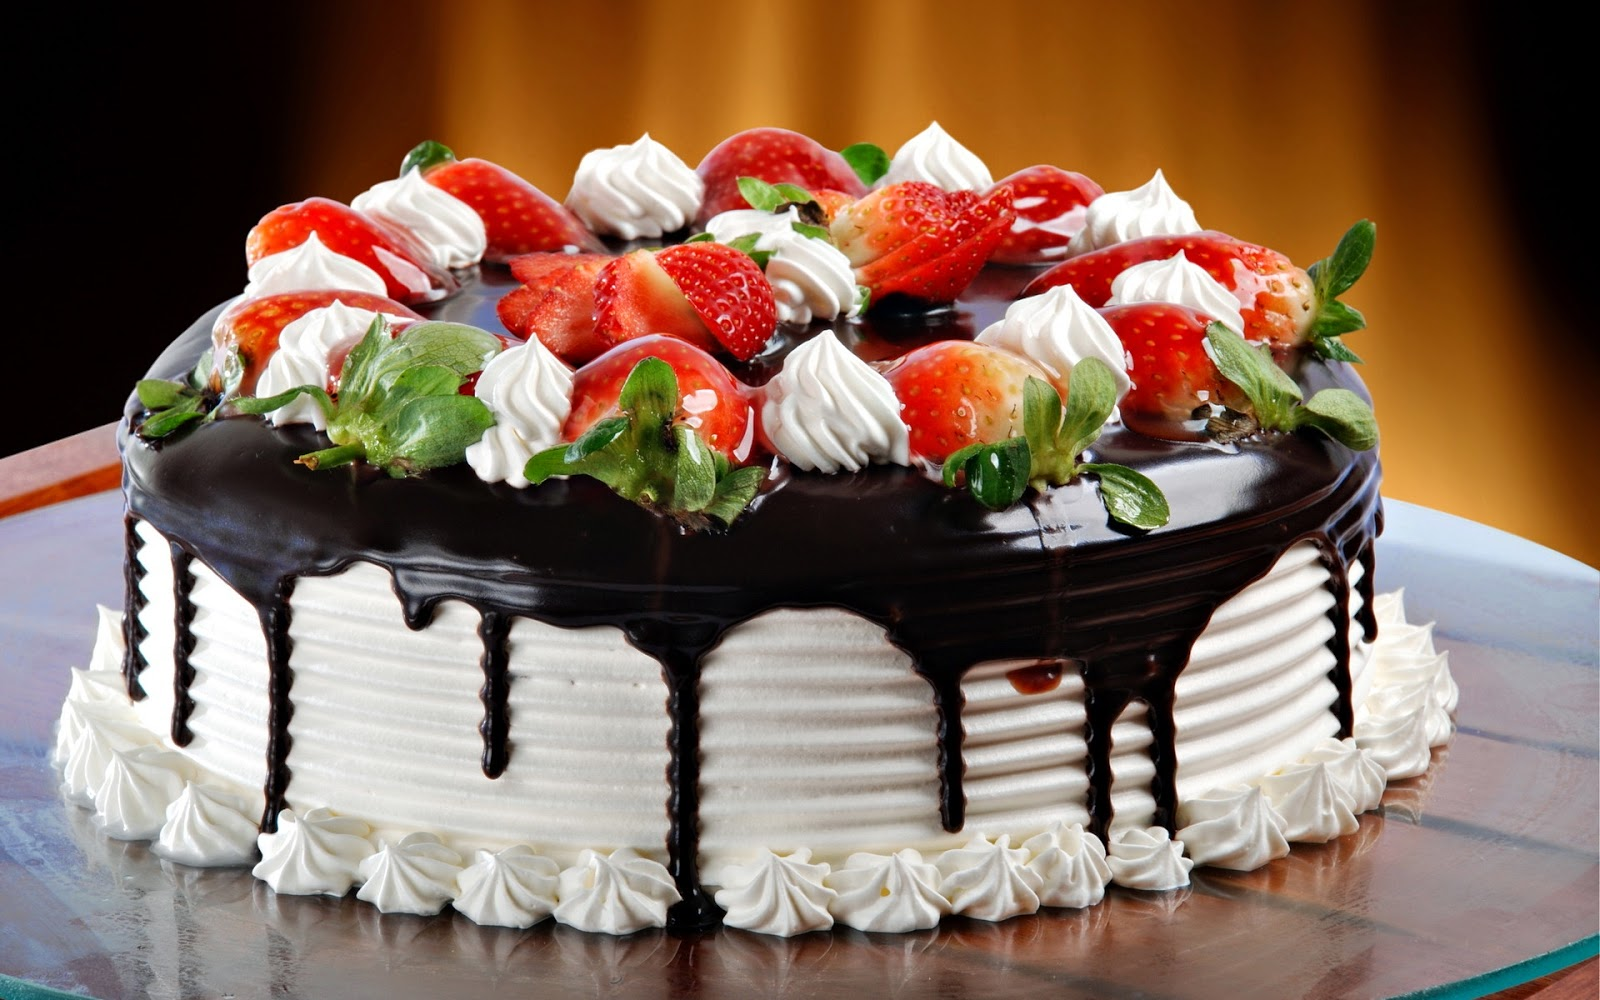 Allinallwalls : Cake Food Strawberry HD Wallpaper ...